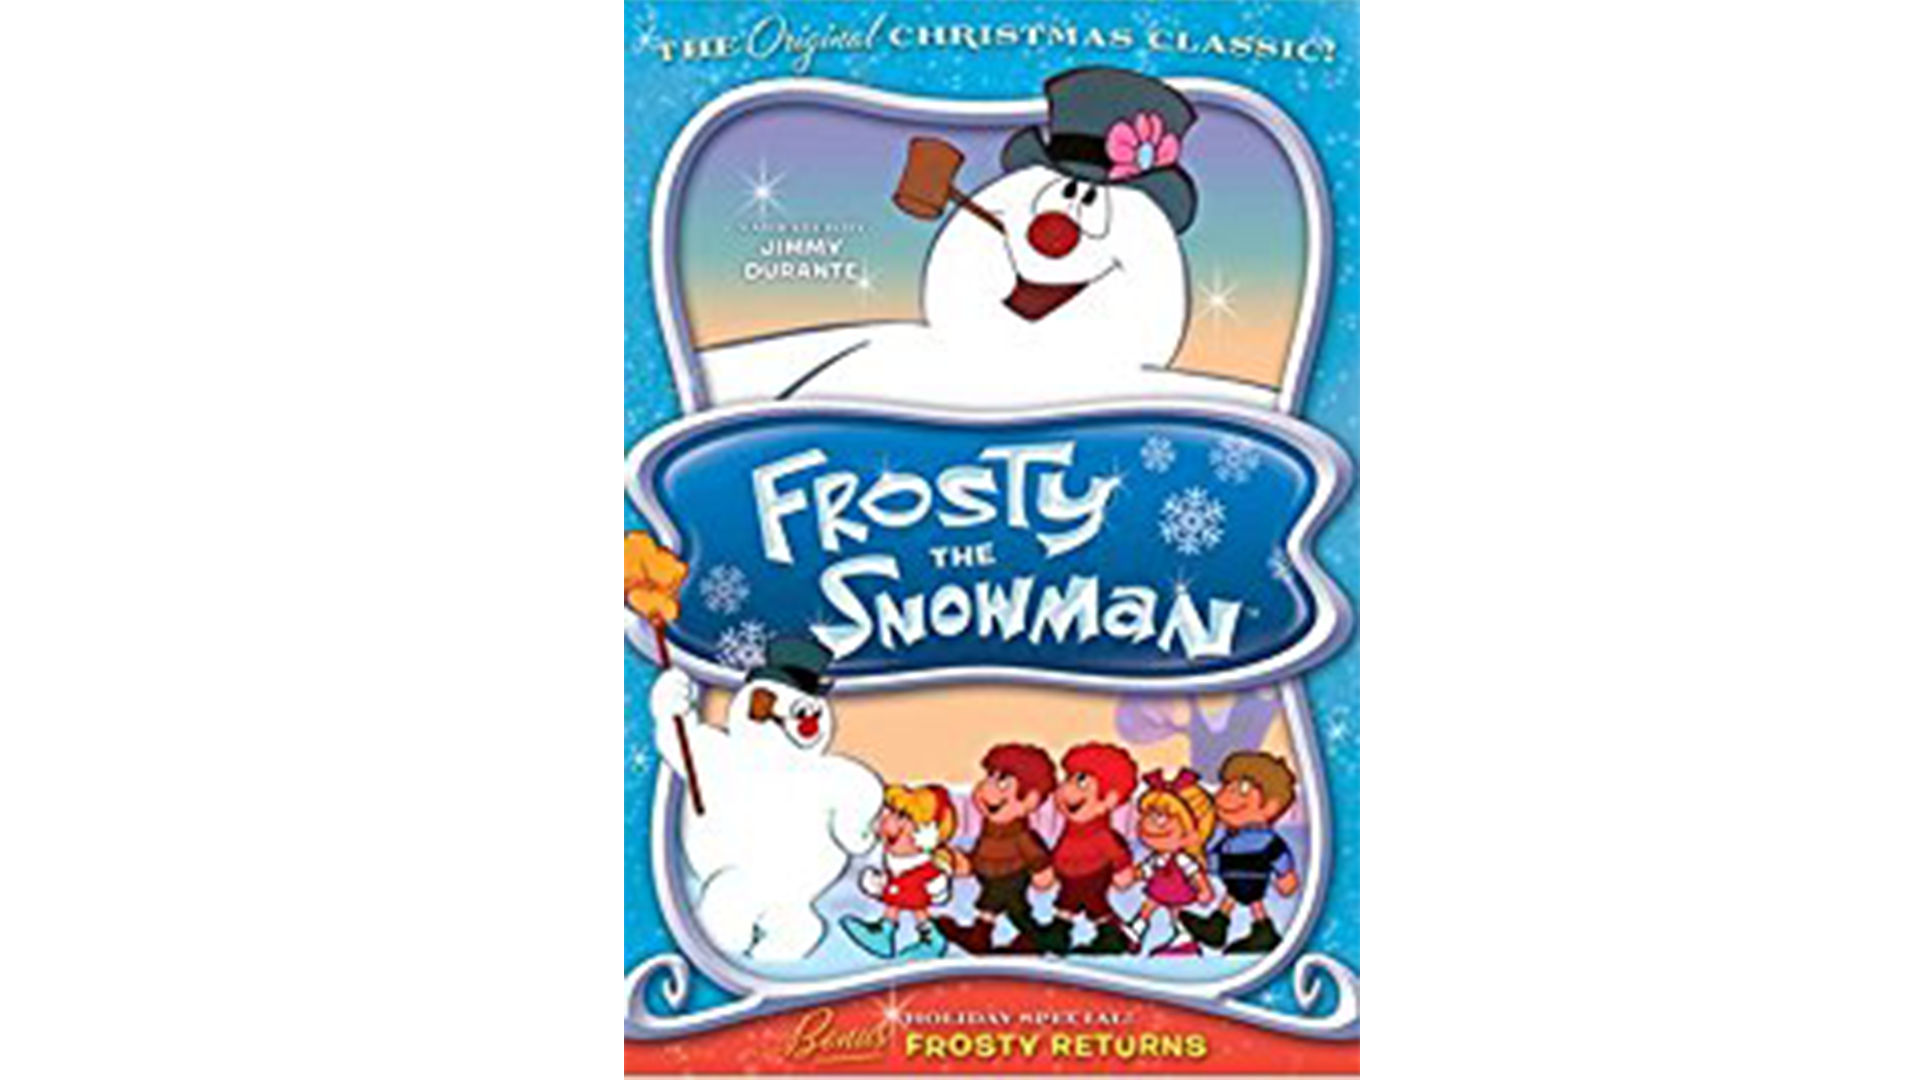 frosty the snowman - Best Classic Christmas Movies